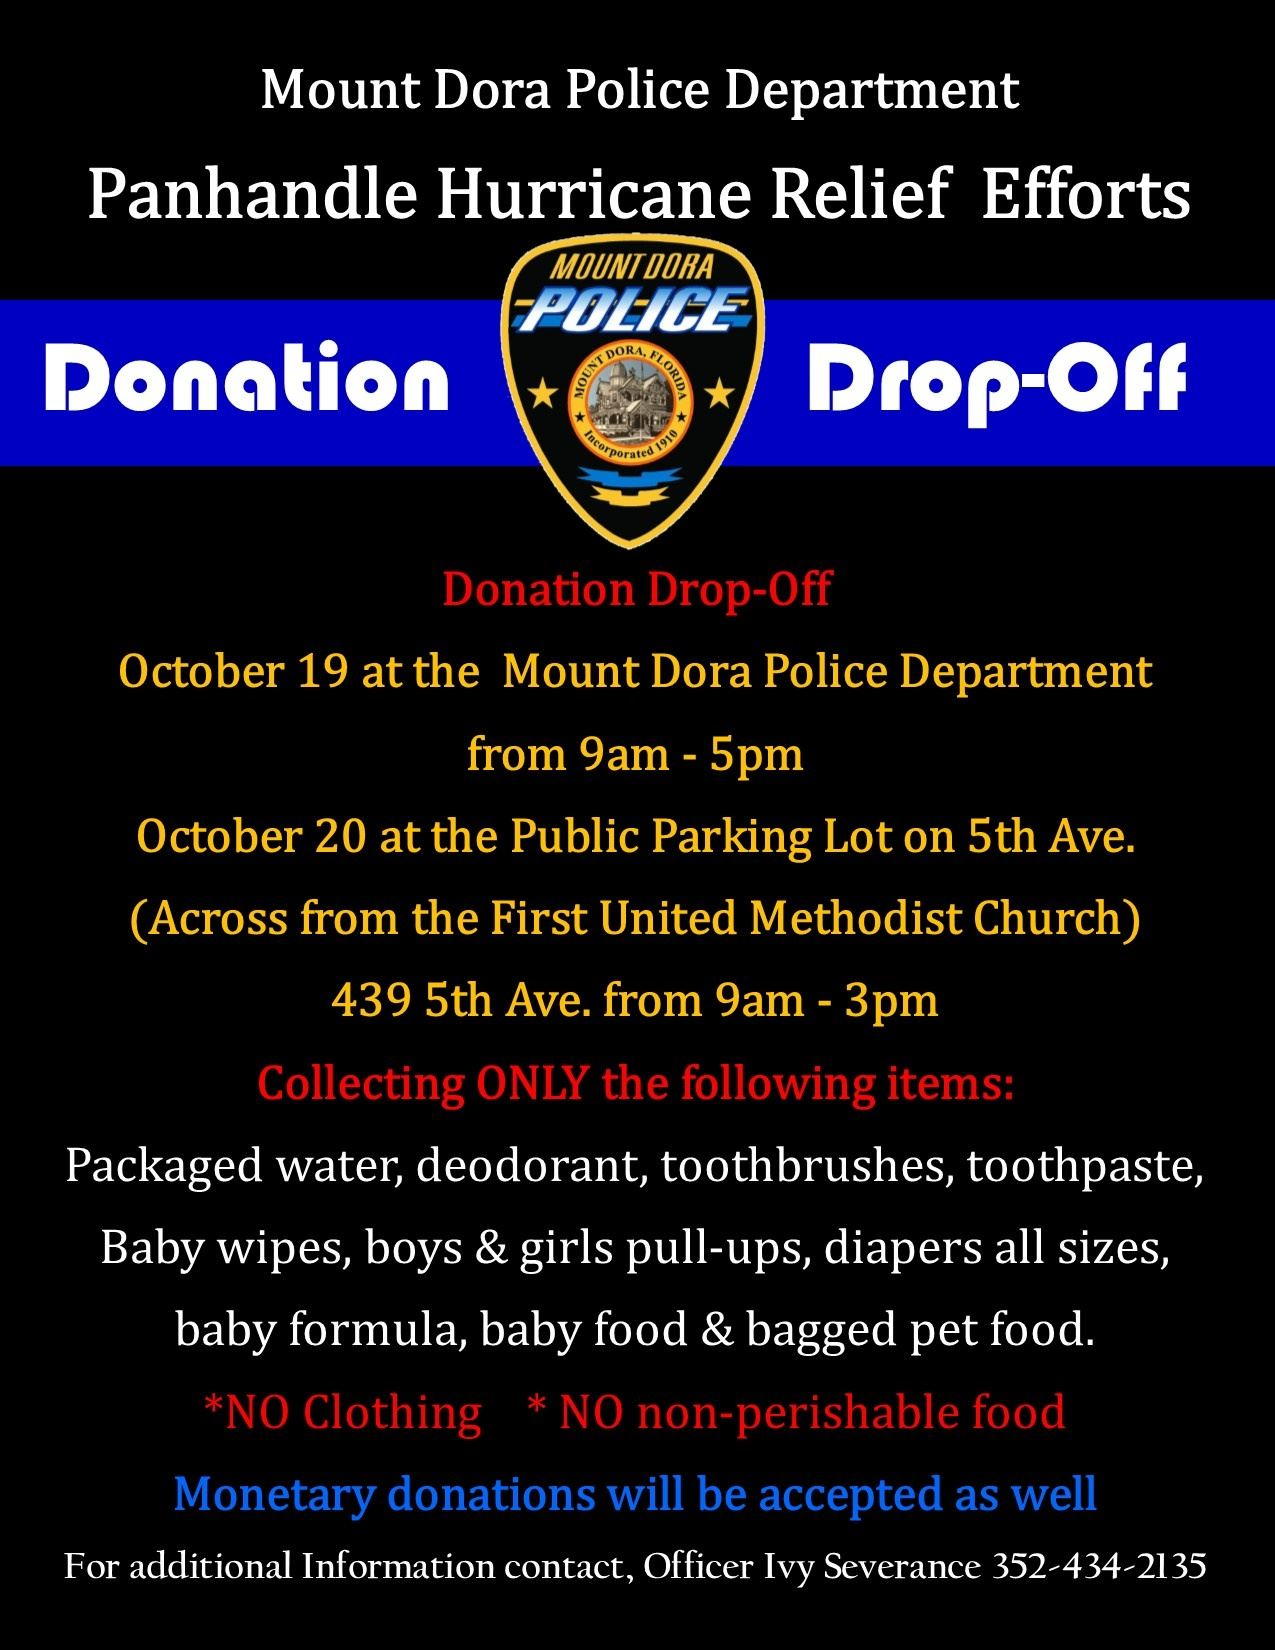 Panhandle Relief Efforts